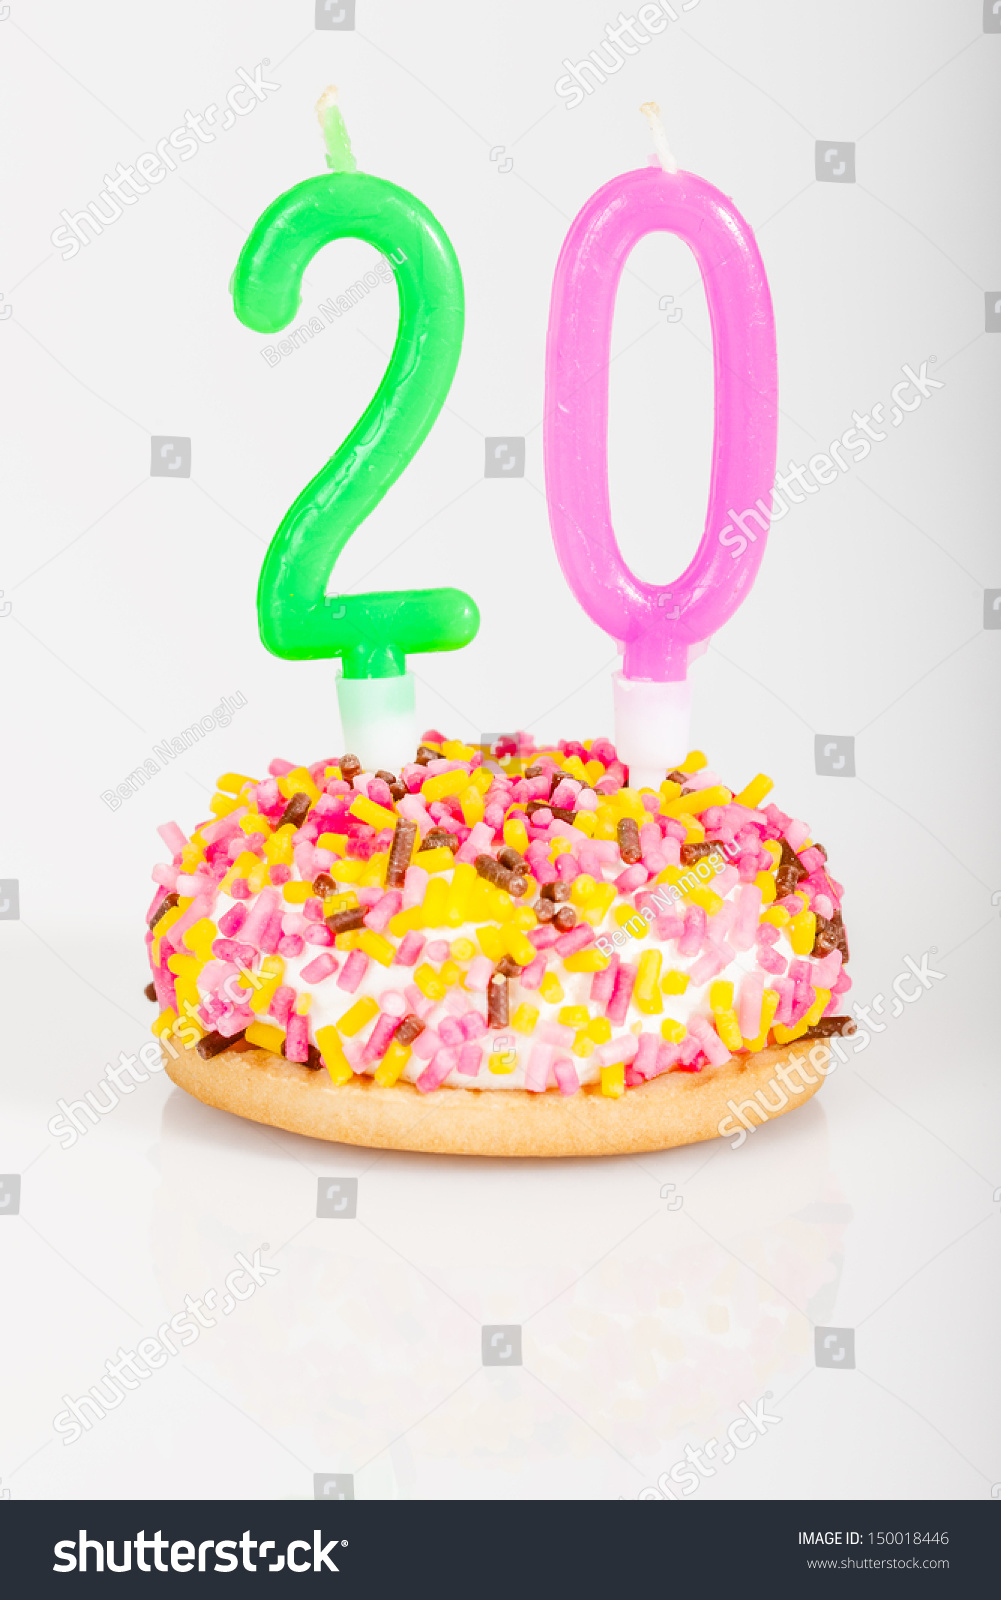 Colorful Birthday Cake Candle Age 20 Stock Photo Edit Now